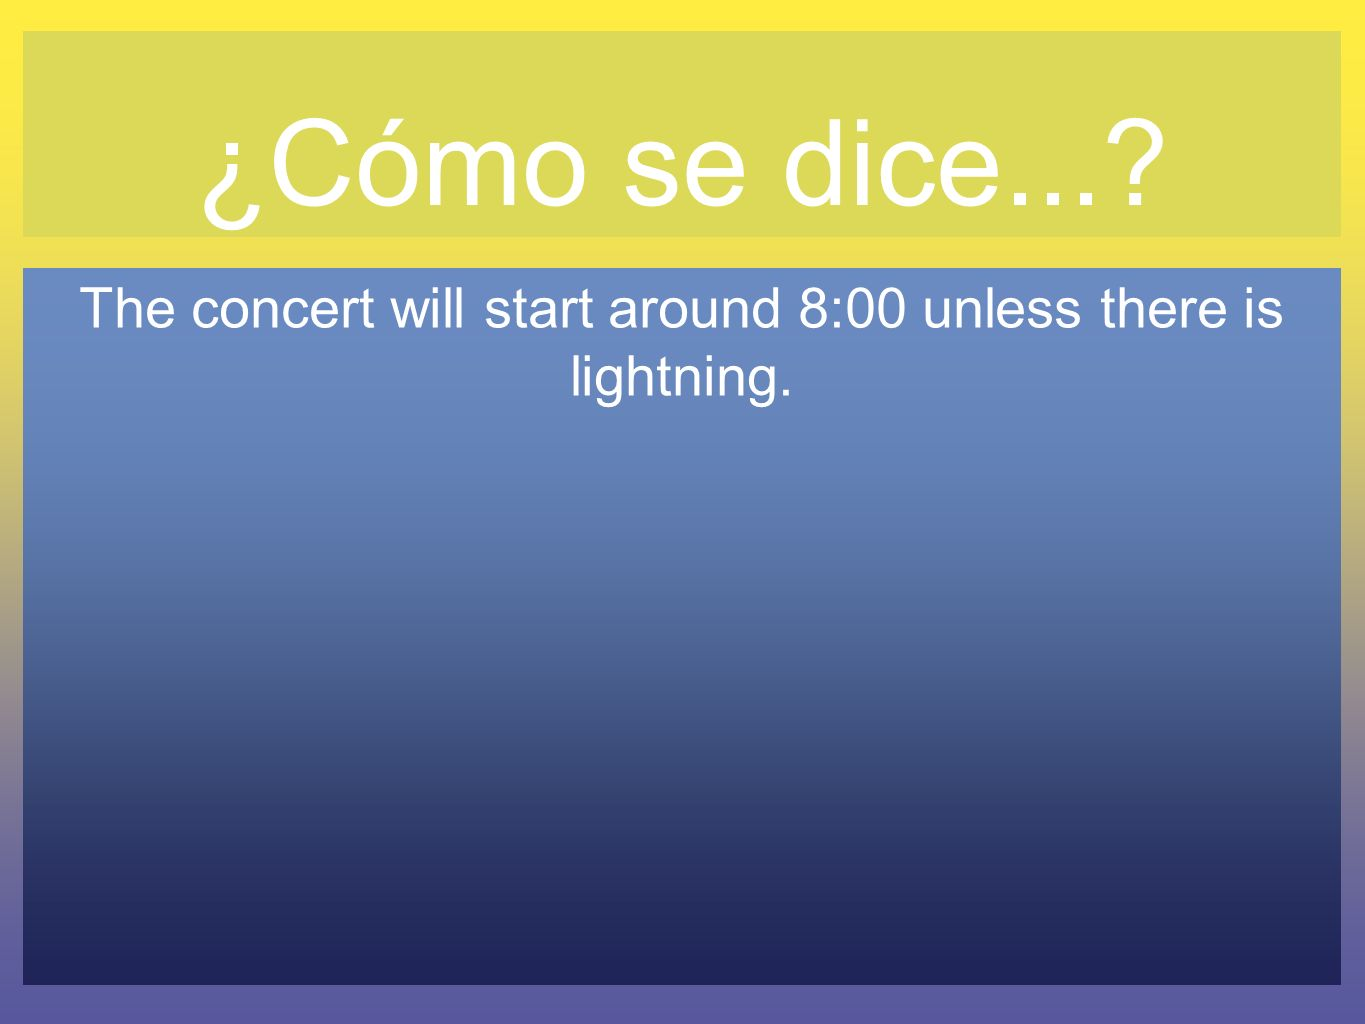 ¿Cómo se dice...? The concert will start around 8:00 unless there is lightning.